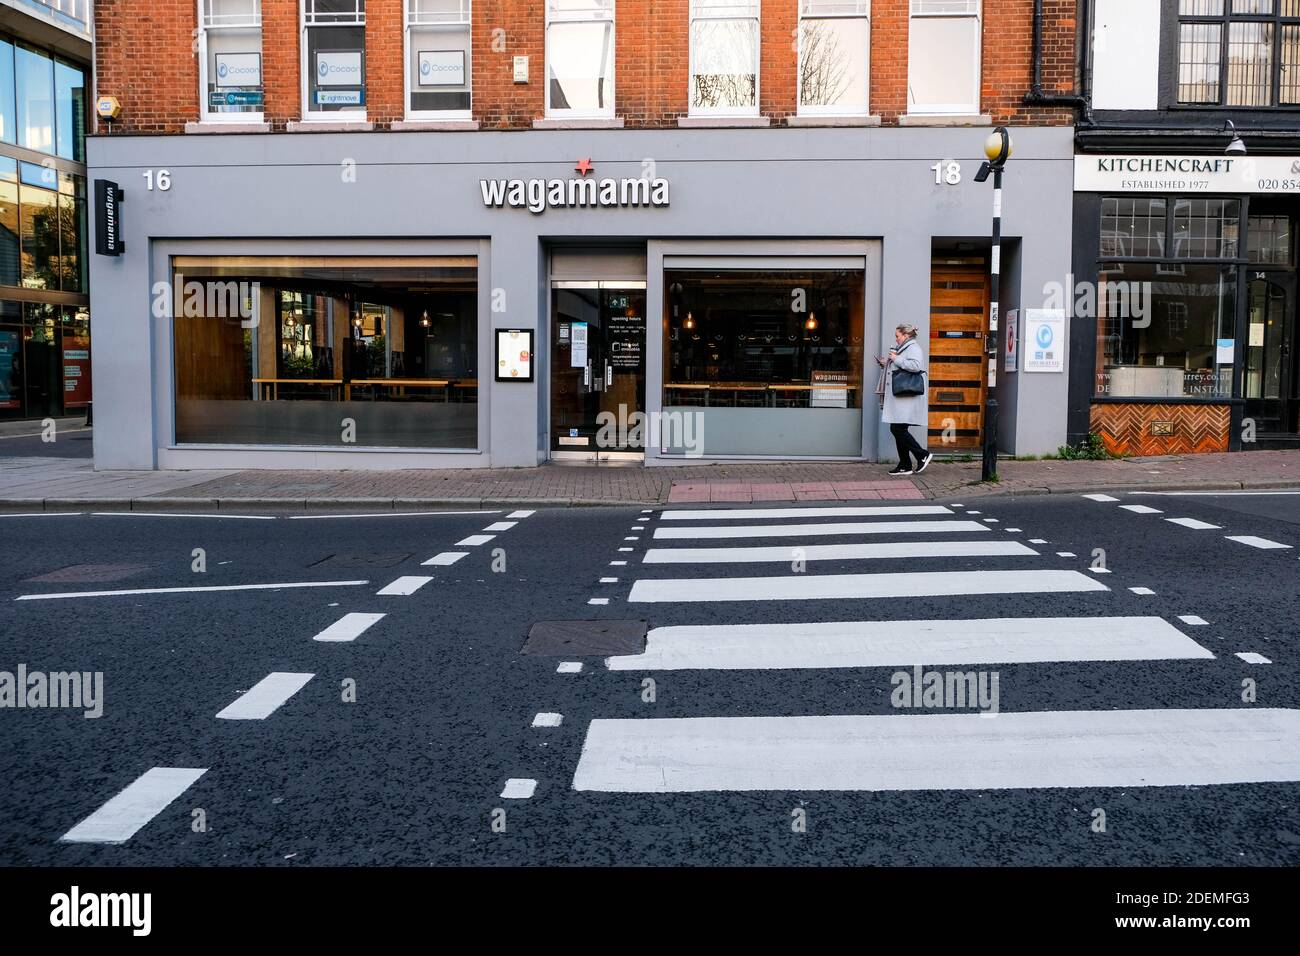 London UK, December 01 2020, Wagamama Asian Style Food Restaurant Closed During COVID-19 Pandemic Lockdown Stock Photo